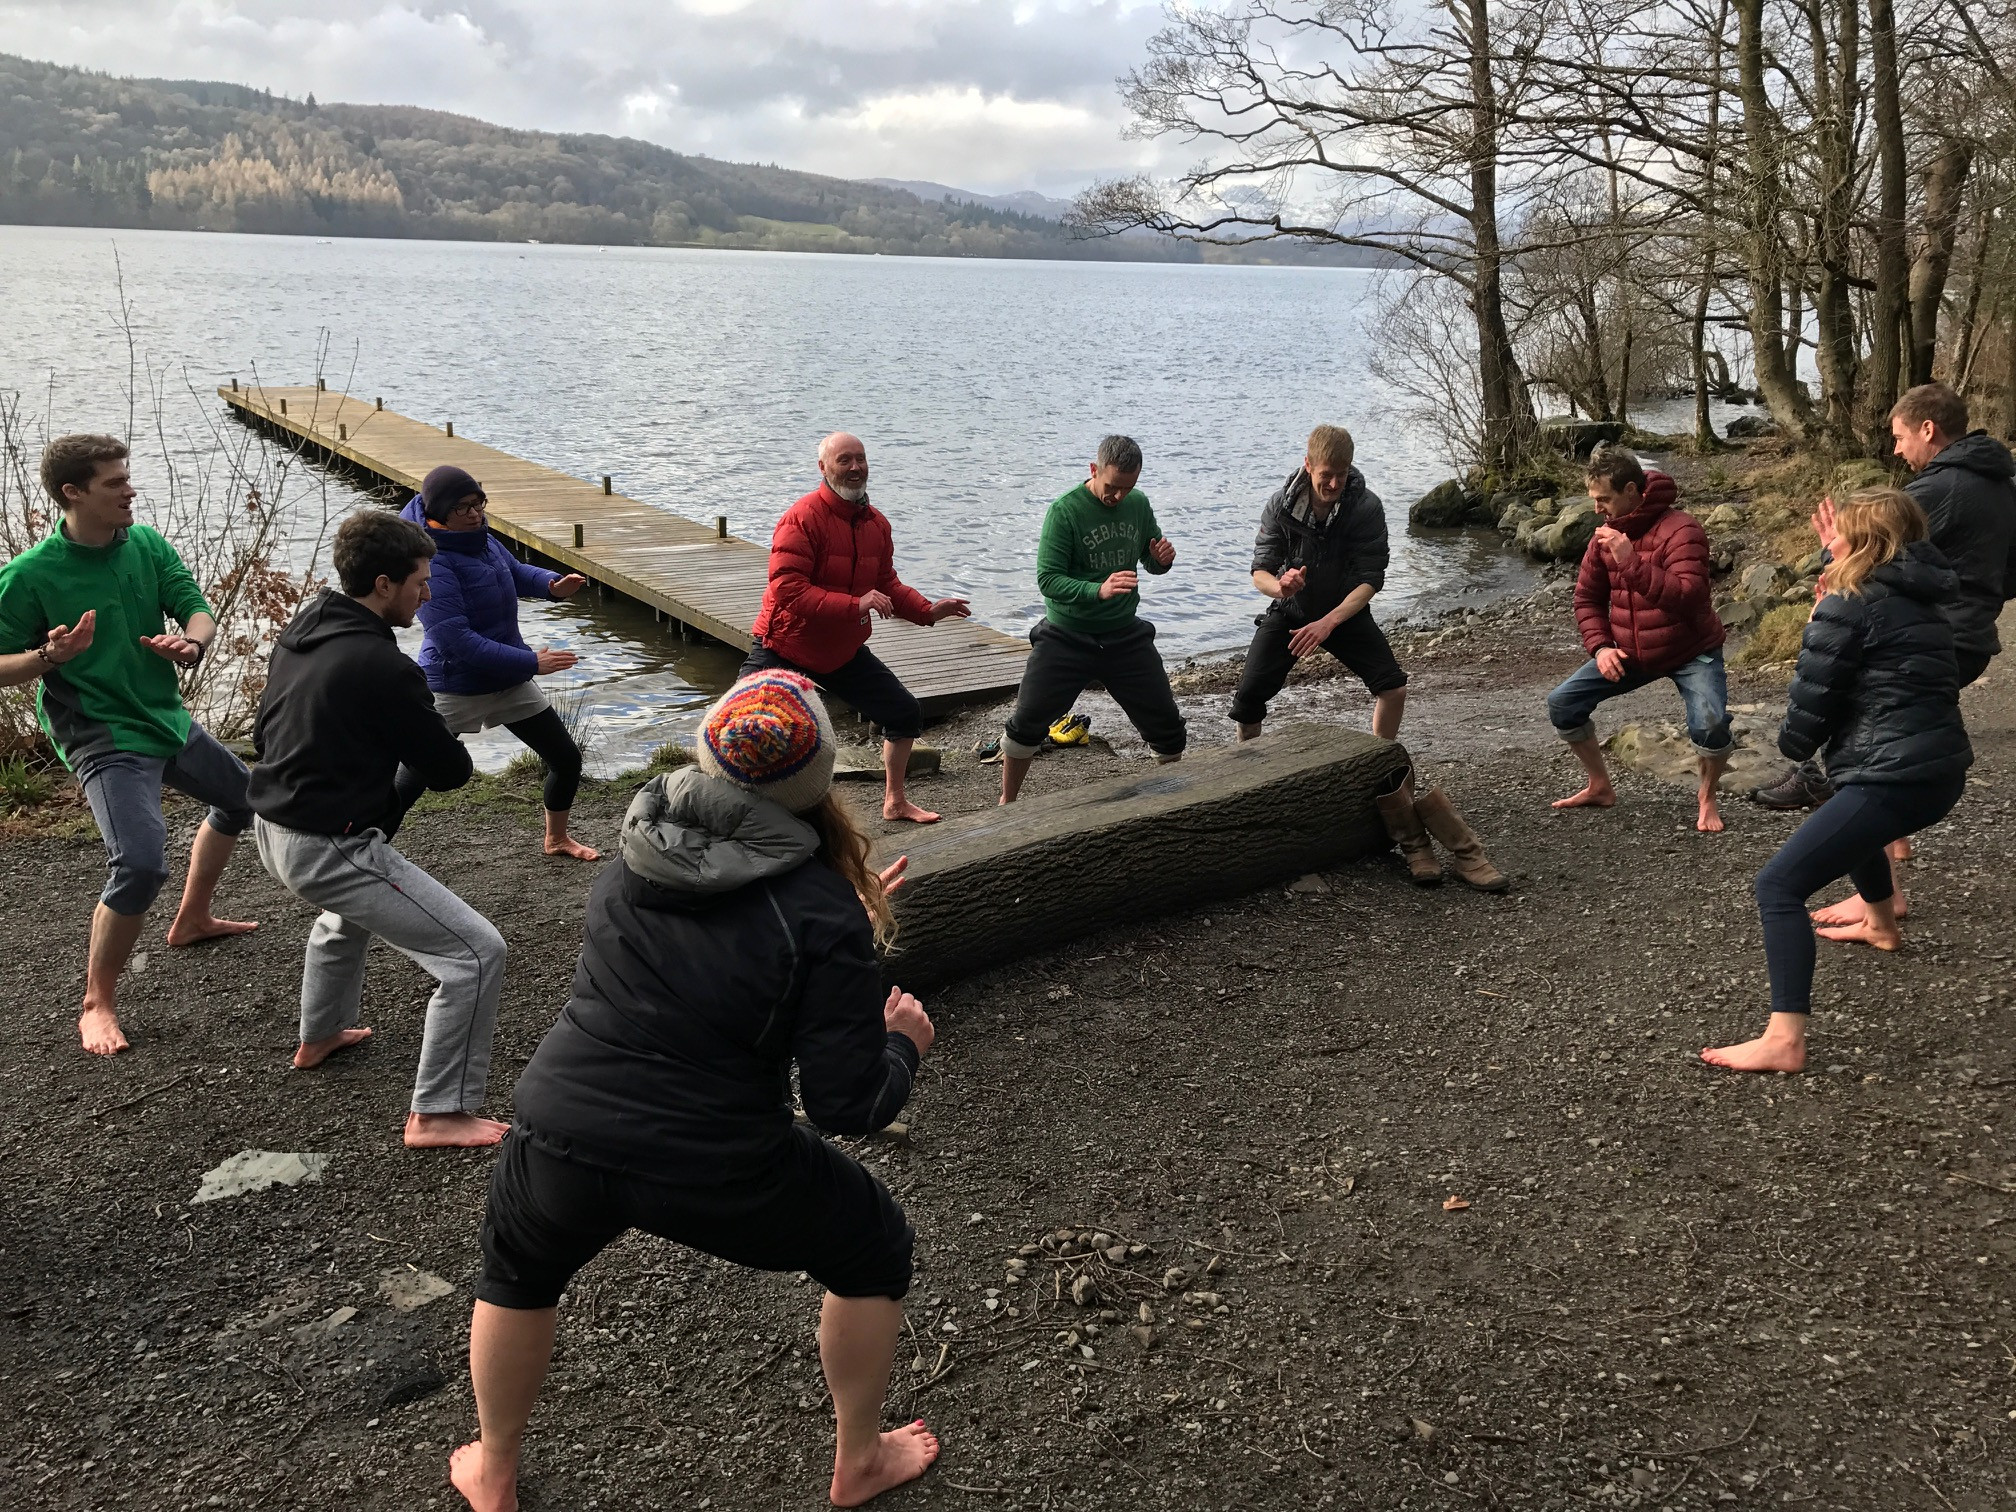 Image 9 of 10 - Experience WHM to get an impression of Wim Hof Method Workshop with Emma Estrela at The Lake District